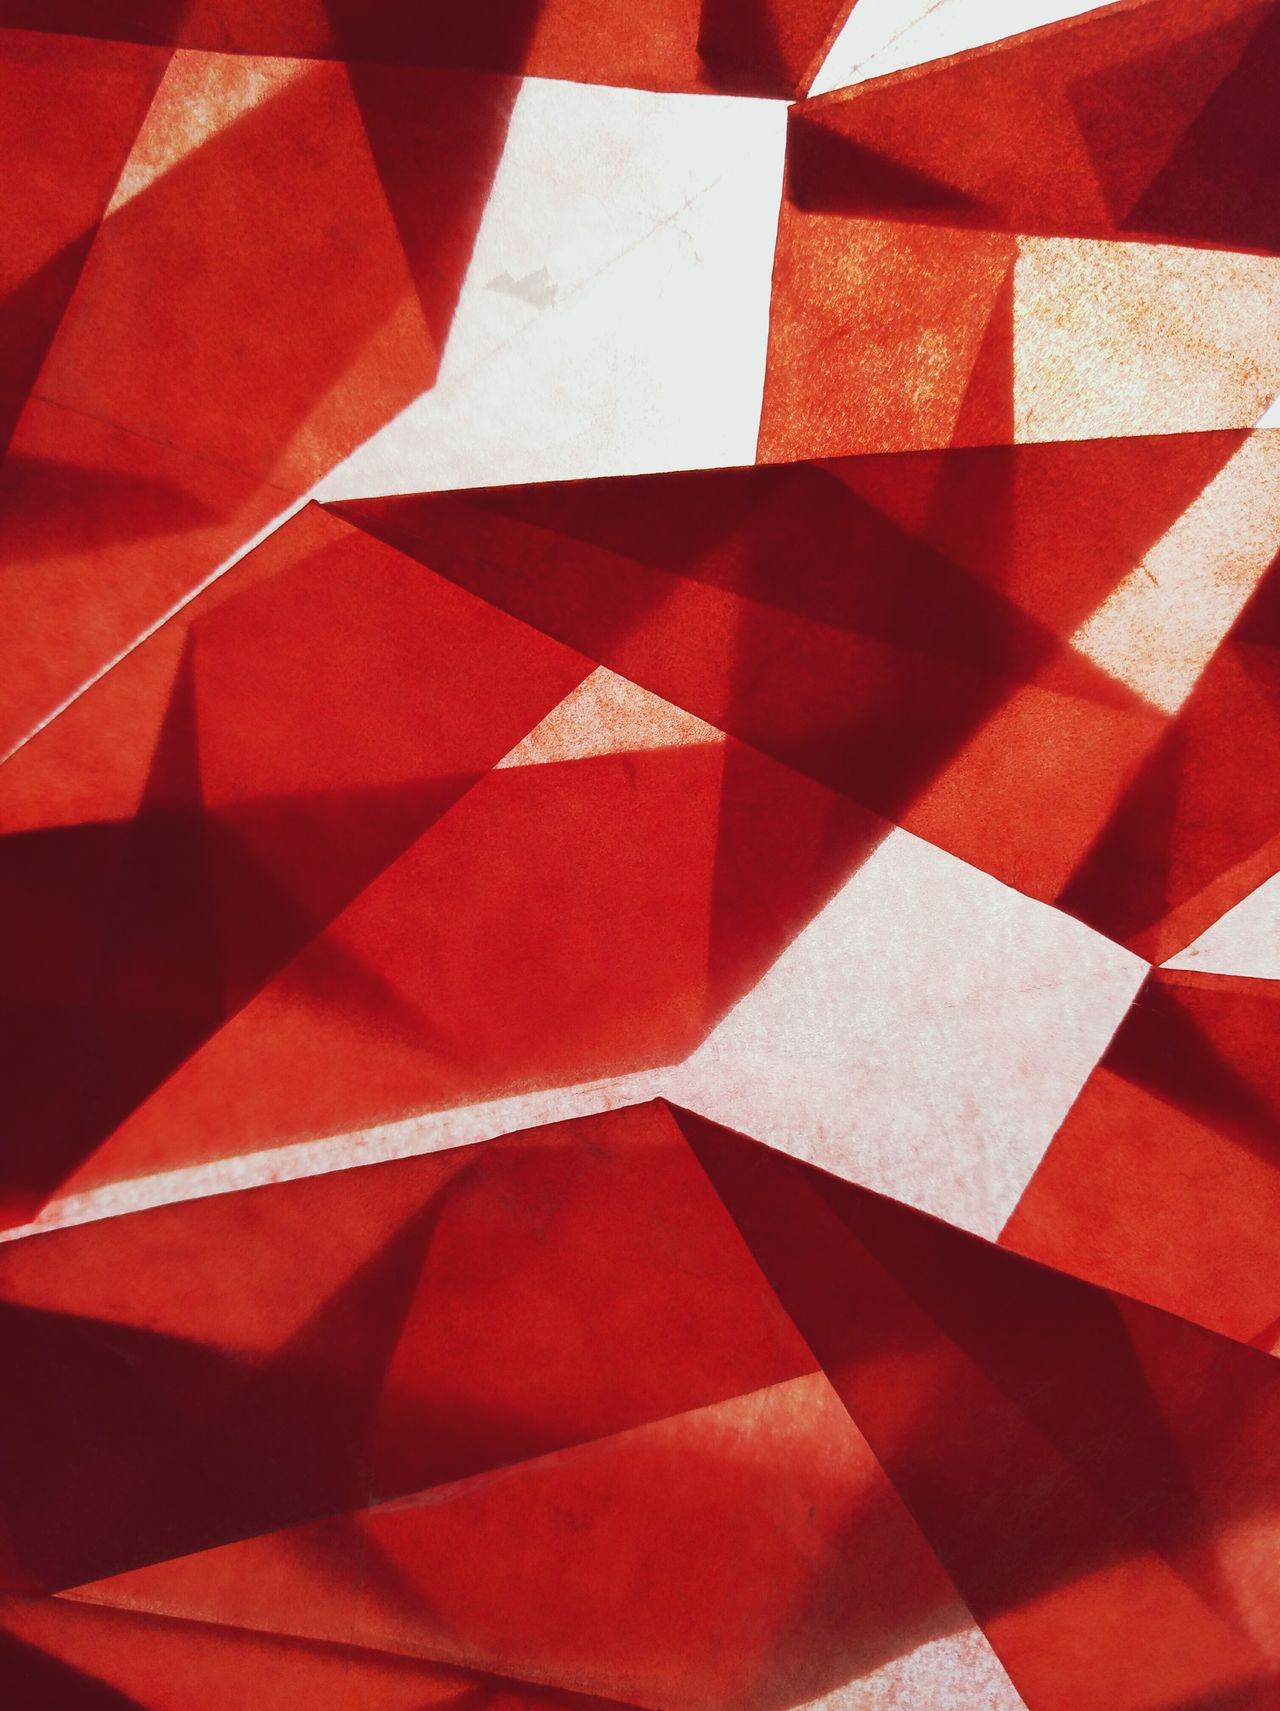 Red Abstract Backgrounds Whats This? Handmade We Are Photography, We Are EyeEm EyeEm Best Shots Pattern Pieces Pattern, Texture, Shape And Form